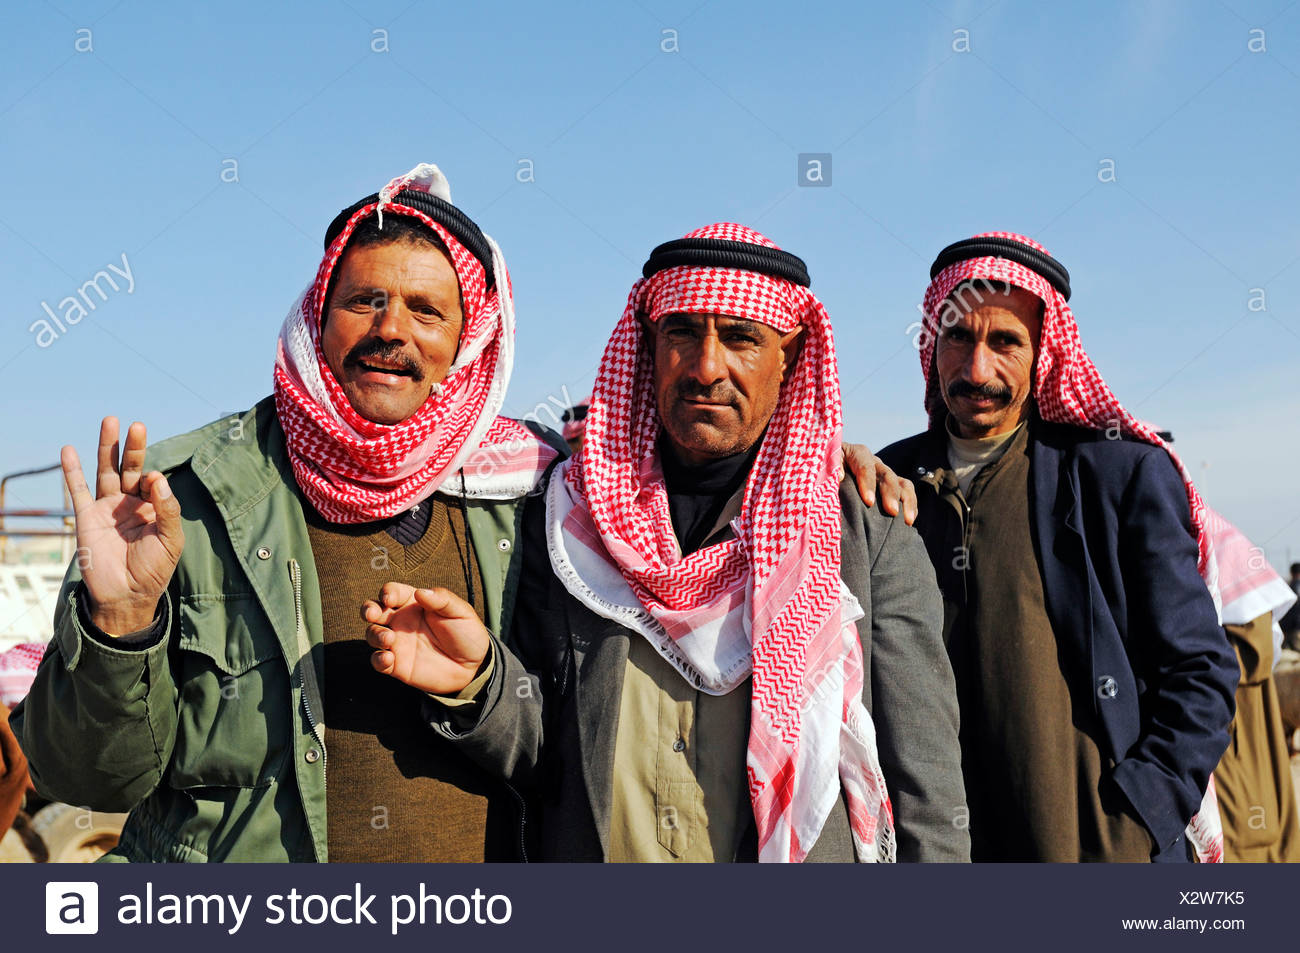 Men on a market for sheep and goats, Kafseh, Syria, Asia Stock Photo